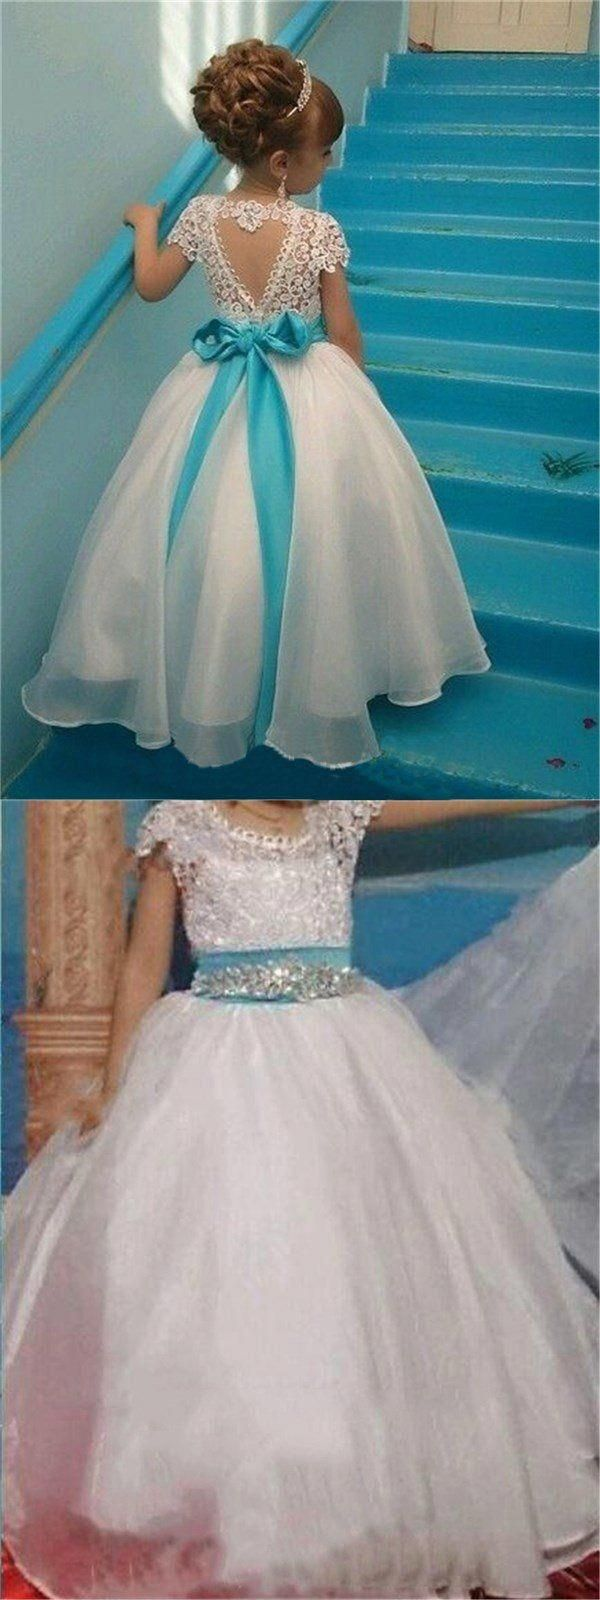 Lace up wedding dress november 2018 Short Sleeves Lovely Cute Lace Pretty Flower Girl Dresses with bow